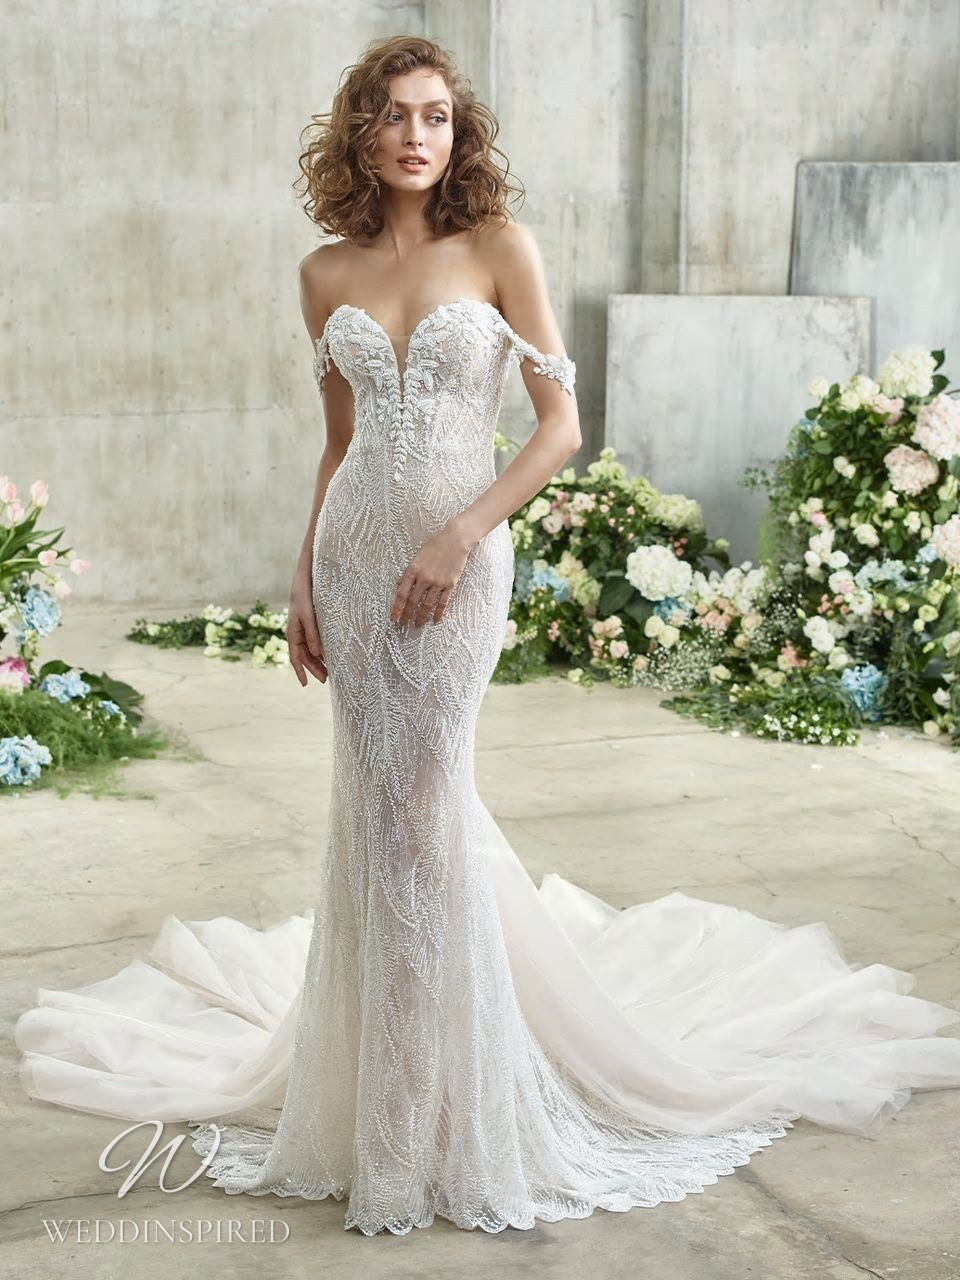 A Badgley Mischka mermaid off the shoulder lace wedding dress with a sweetheart neckline and a train